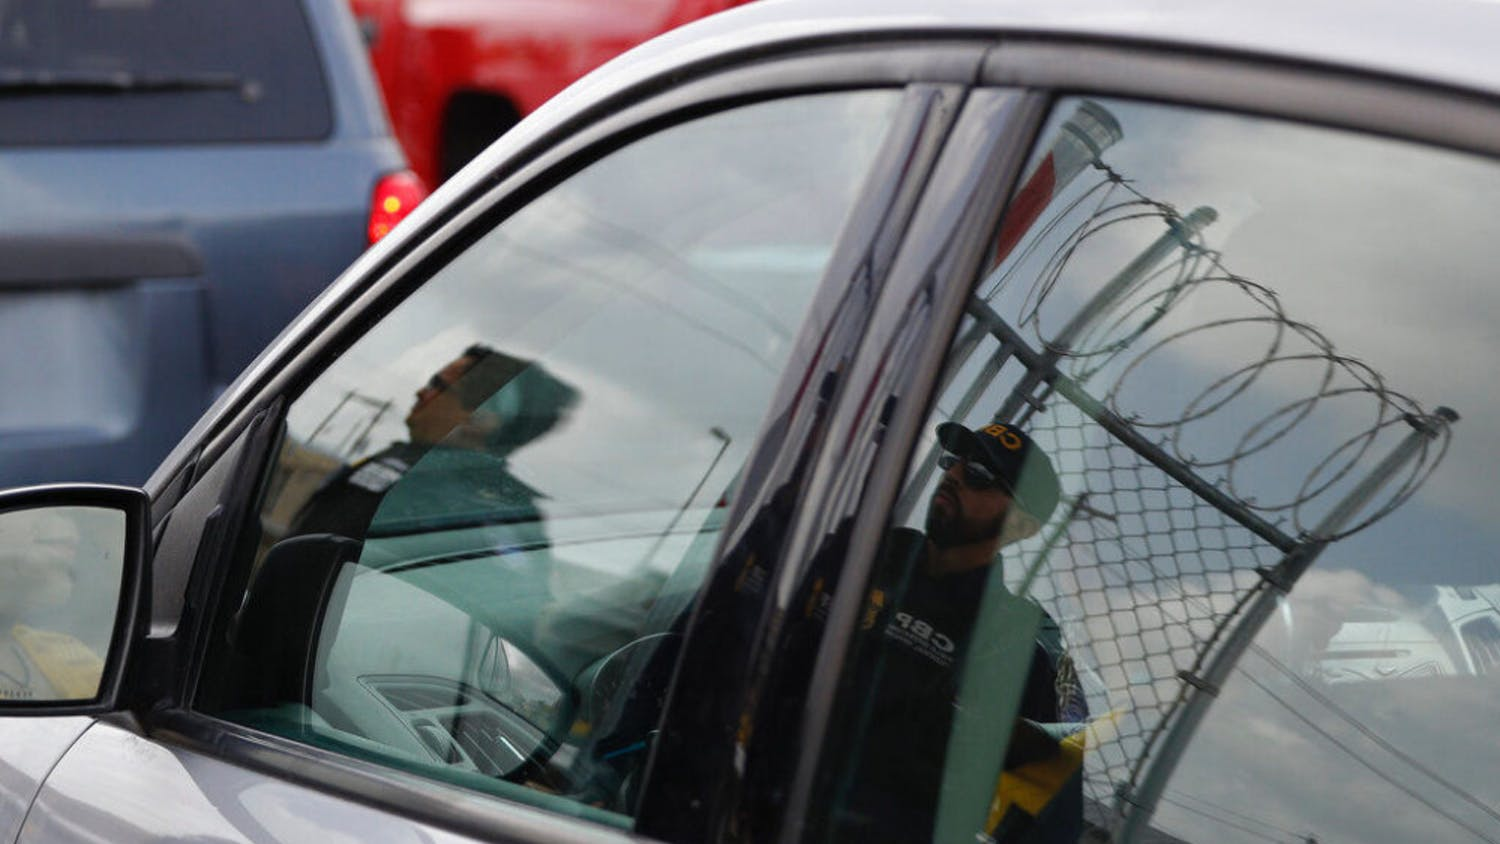 Customs and Border Protection agents are reflected in the window of an entering car, as they survey vehicles entering the U.S. on the Puerta Mexico international bridge leading into Brownsville, Texas from Matamoros, Mexico, Friday, June 28, 2019. Hundreds of migrants from Central America, South America, the Caribbean and Africa have been waiting for their number to be called at the bridge in downtown Matamoros, to have the opportunity to request asylum in the U.S.